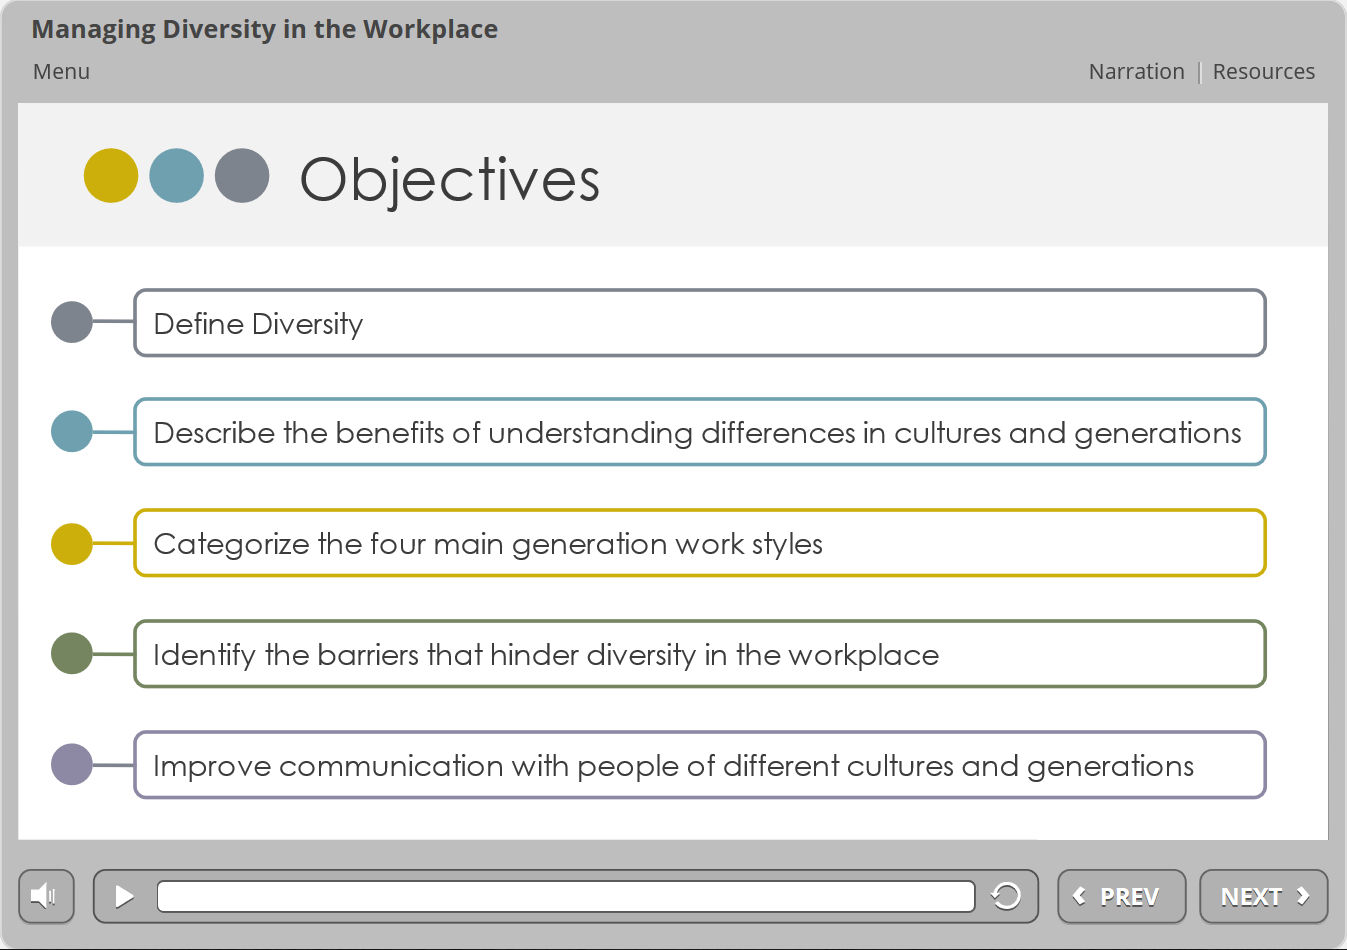 Managing Diversity: Valuing Differences in the Workplace